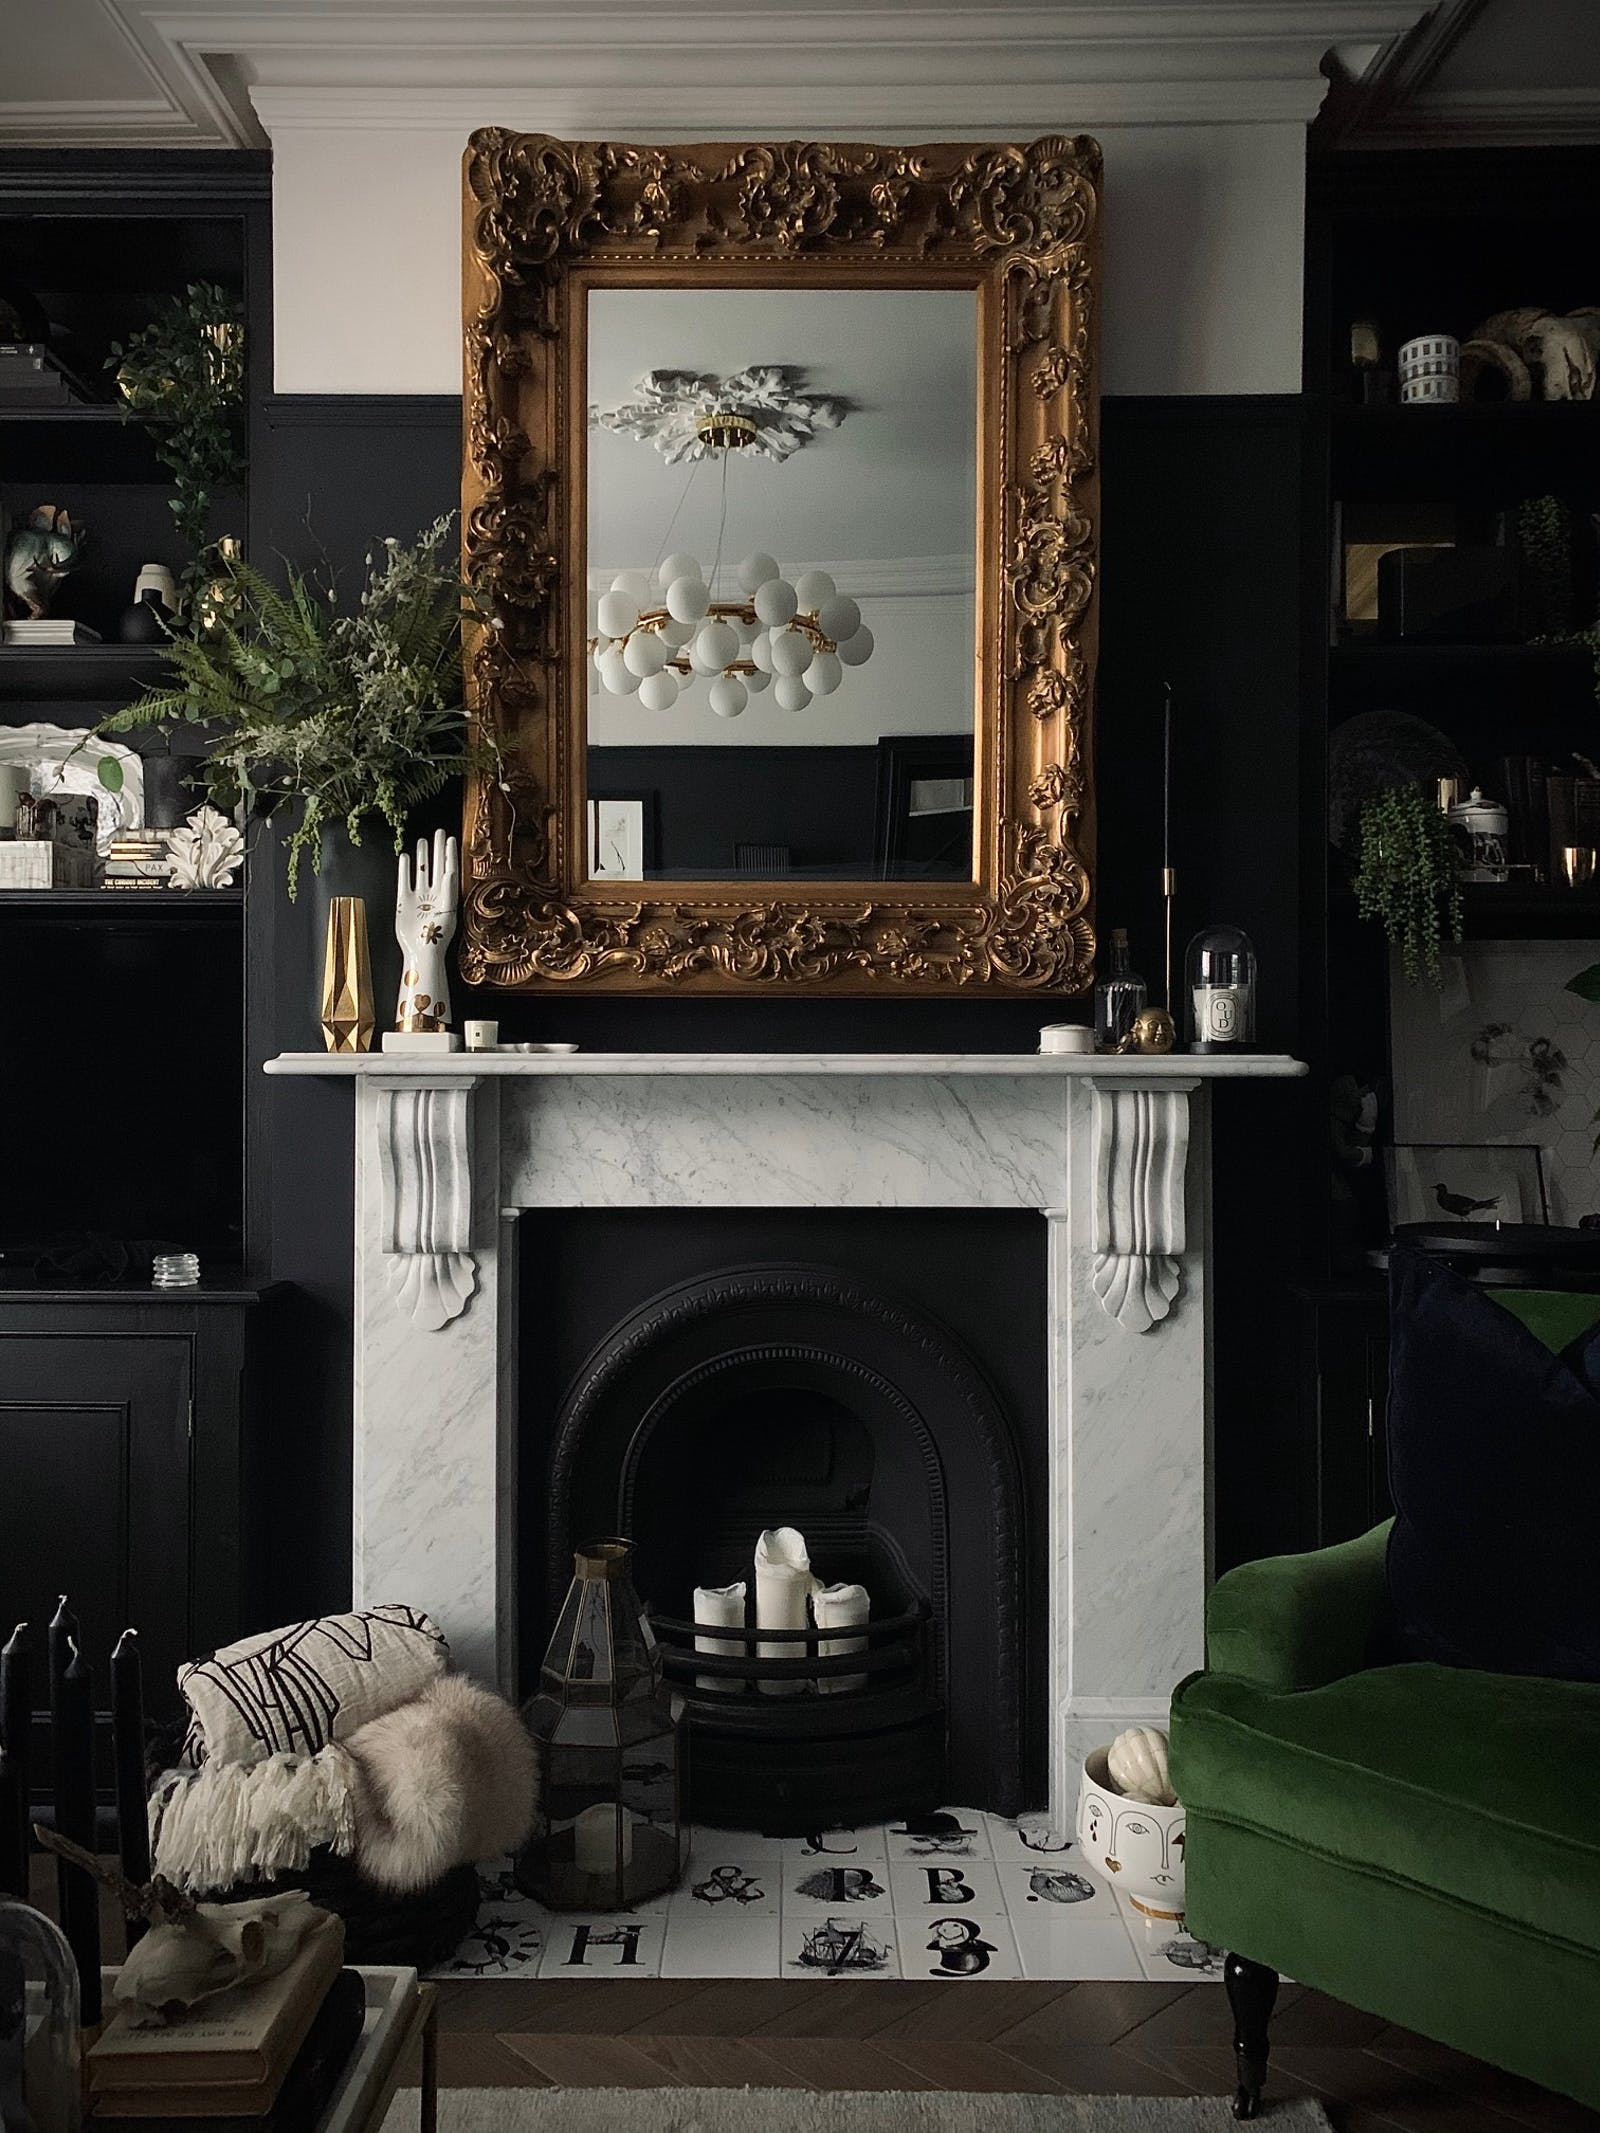 Fireplace with a big vintage mirror reflecting on the lamps on the ceiling